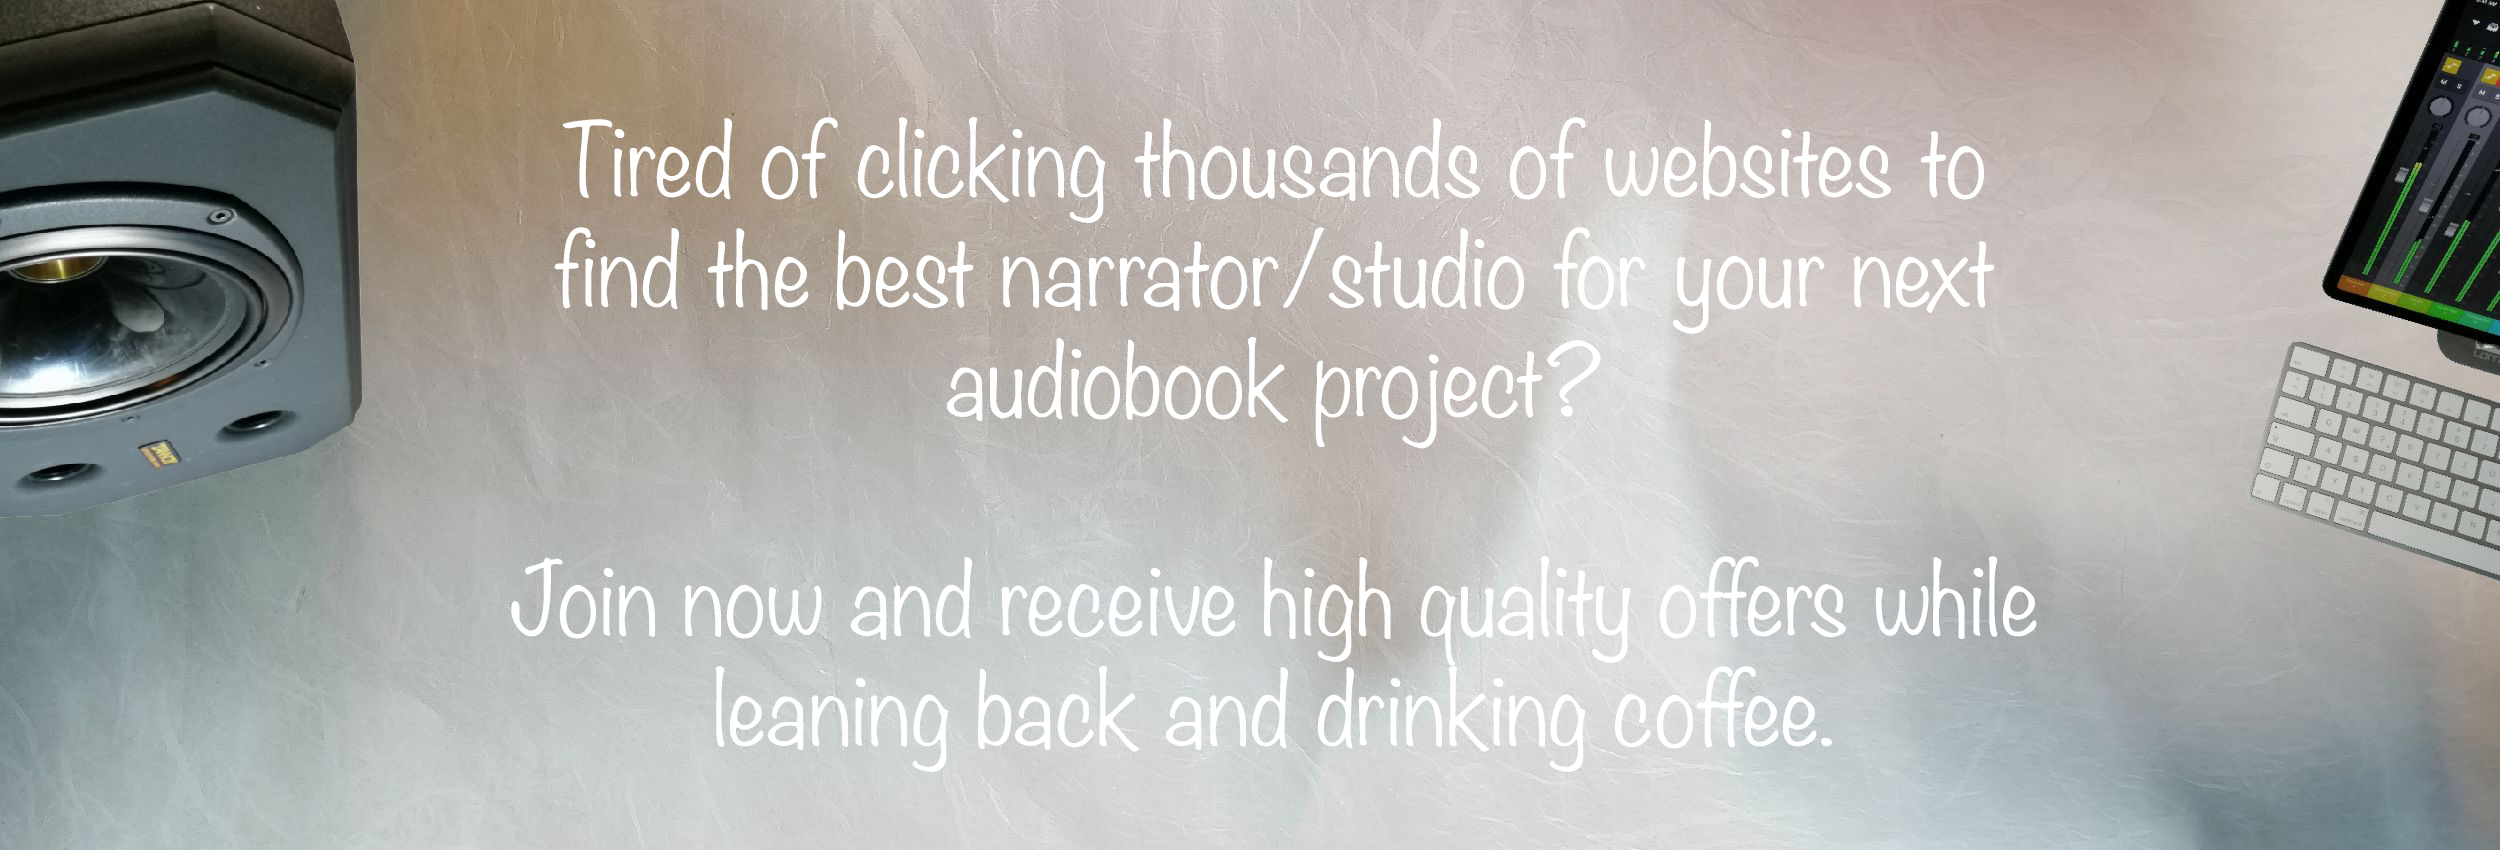 All Around Audiobooks - Slider Image